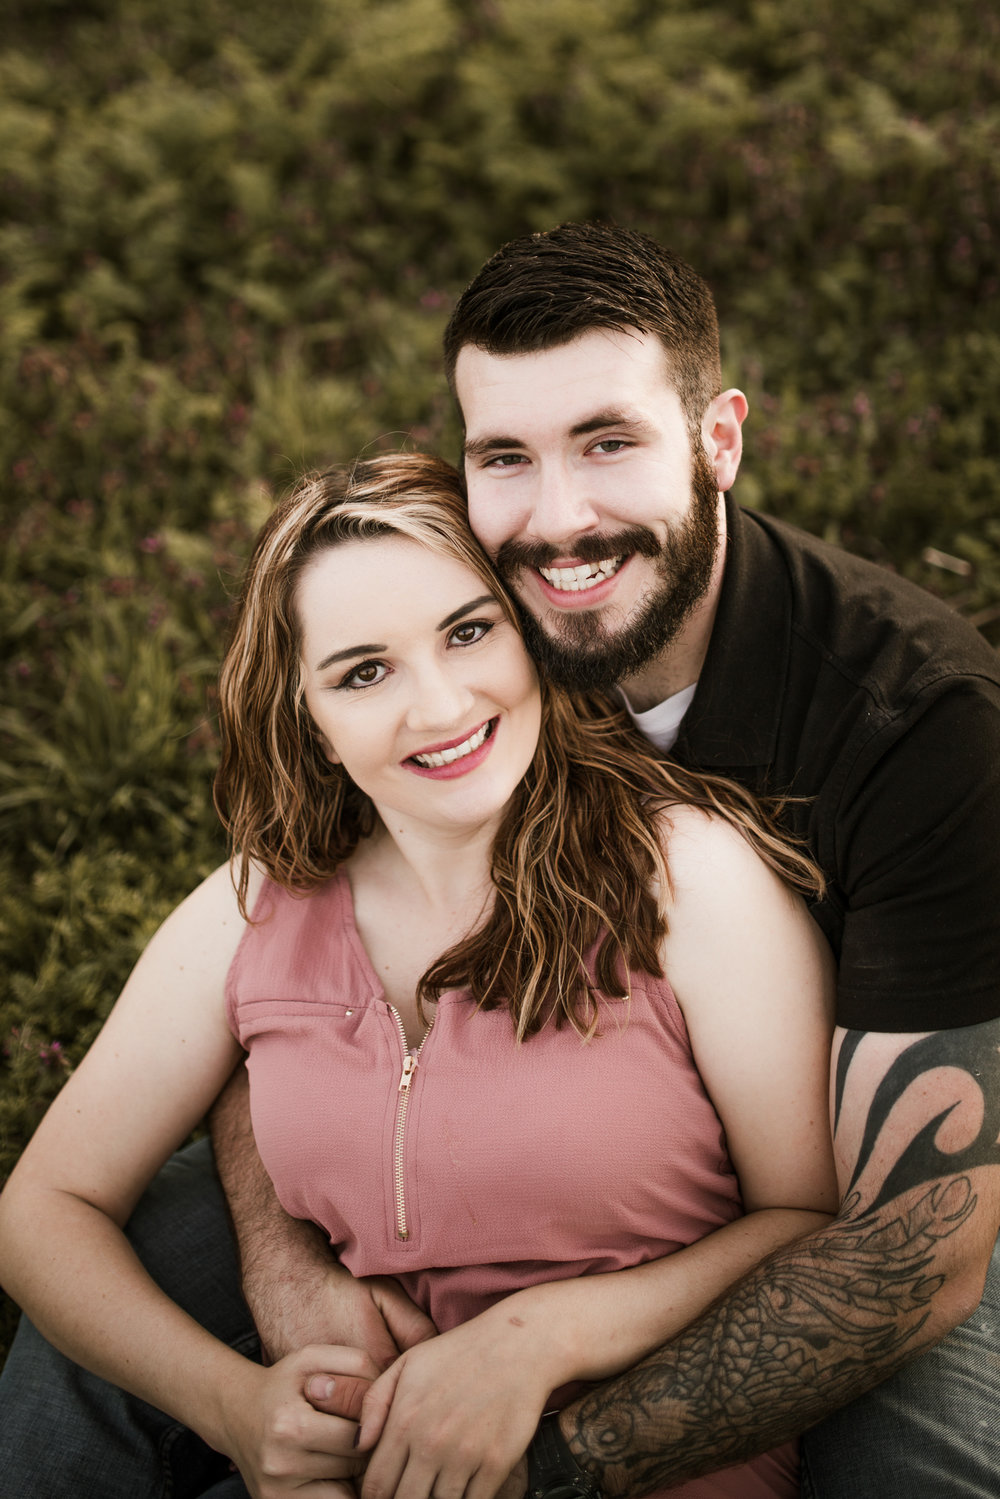 Richmond Kentucky Engagement Photographer - Ariana Jordan Photography -43.jpg